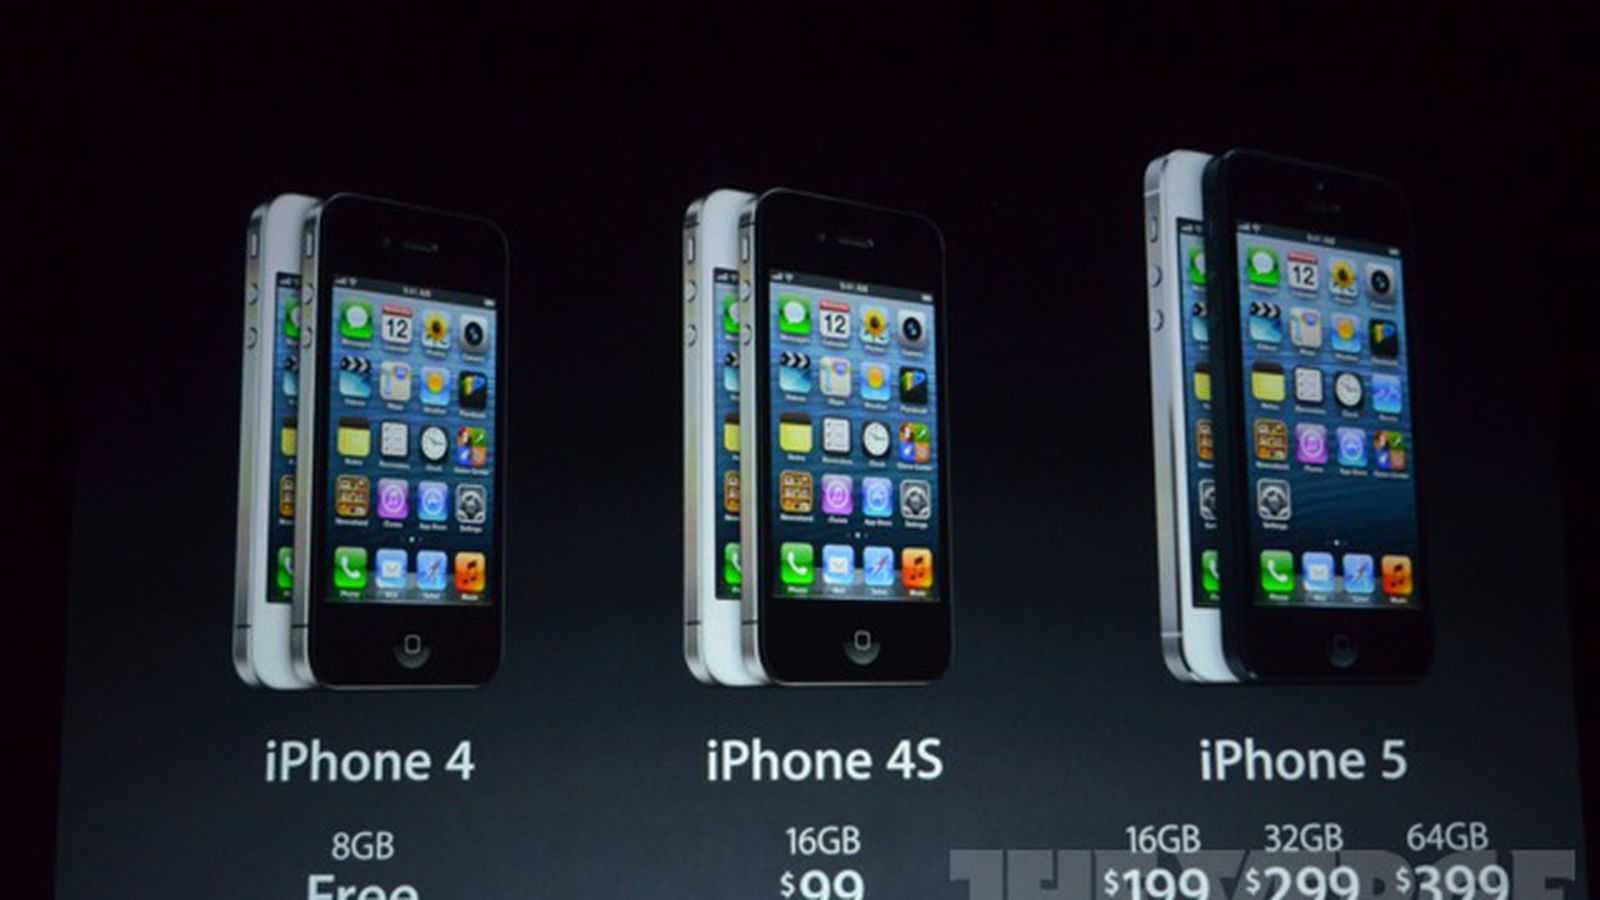 IPhone 4S Drops To 99 4 Now Free Apple Discontinues The 3GS